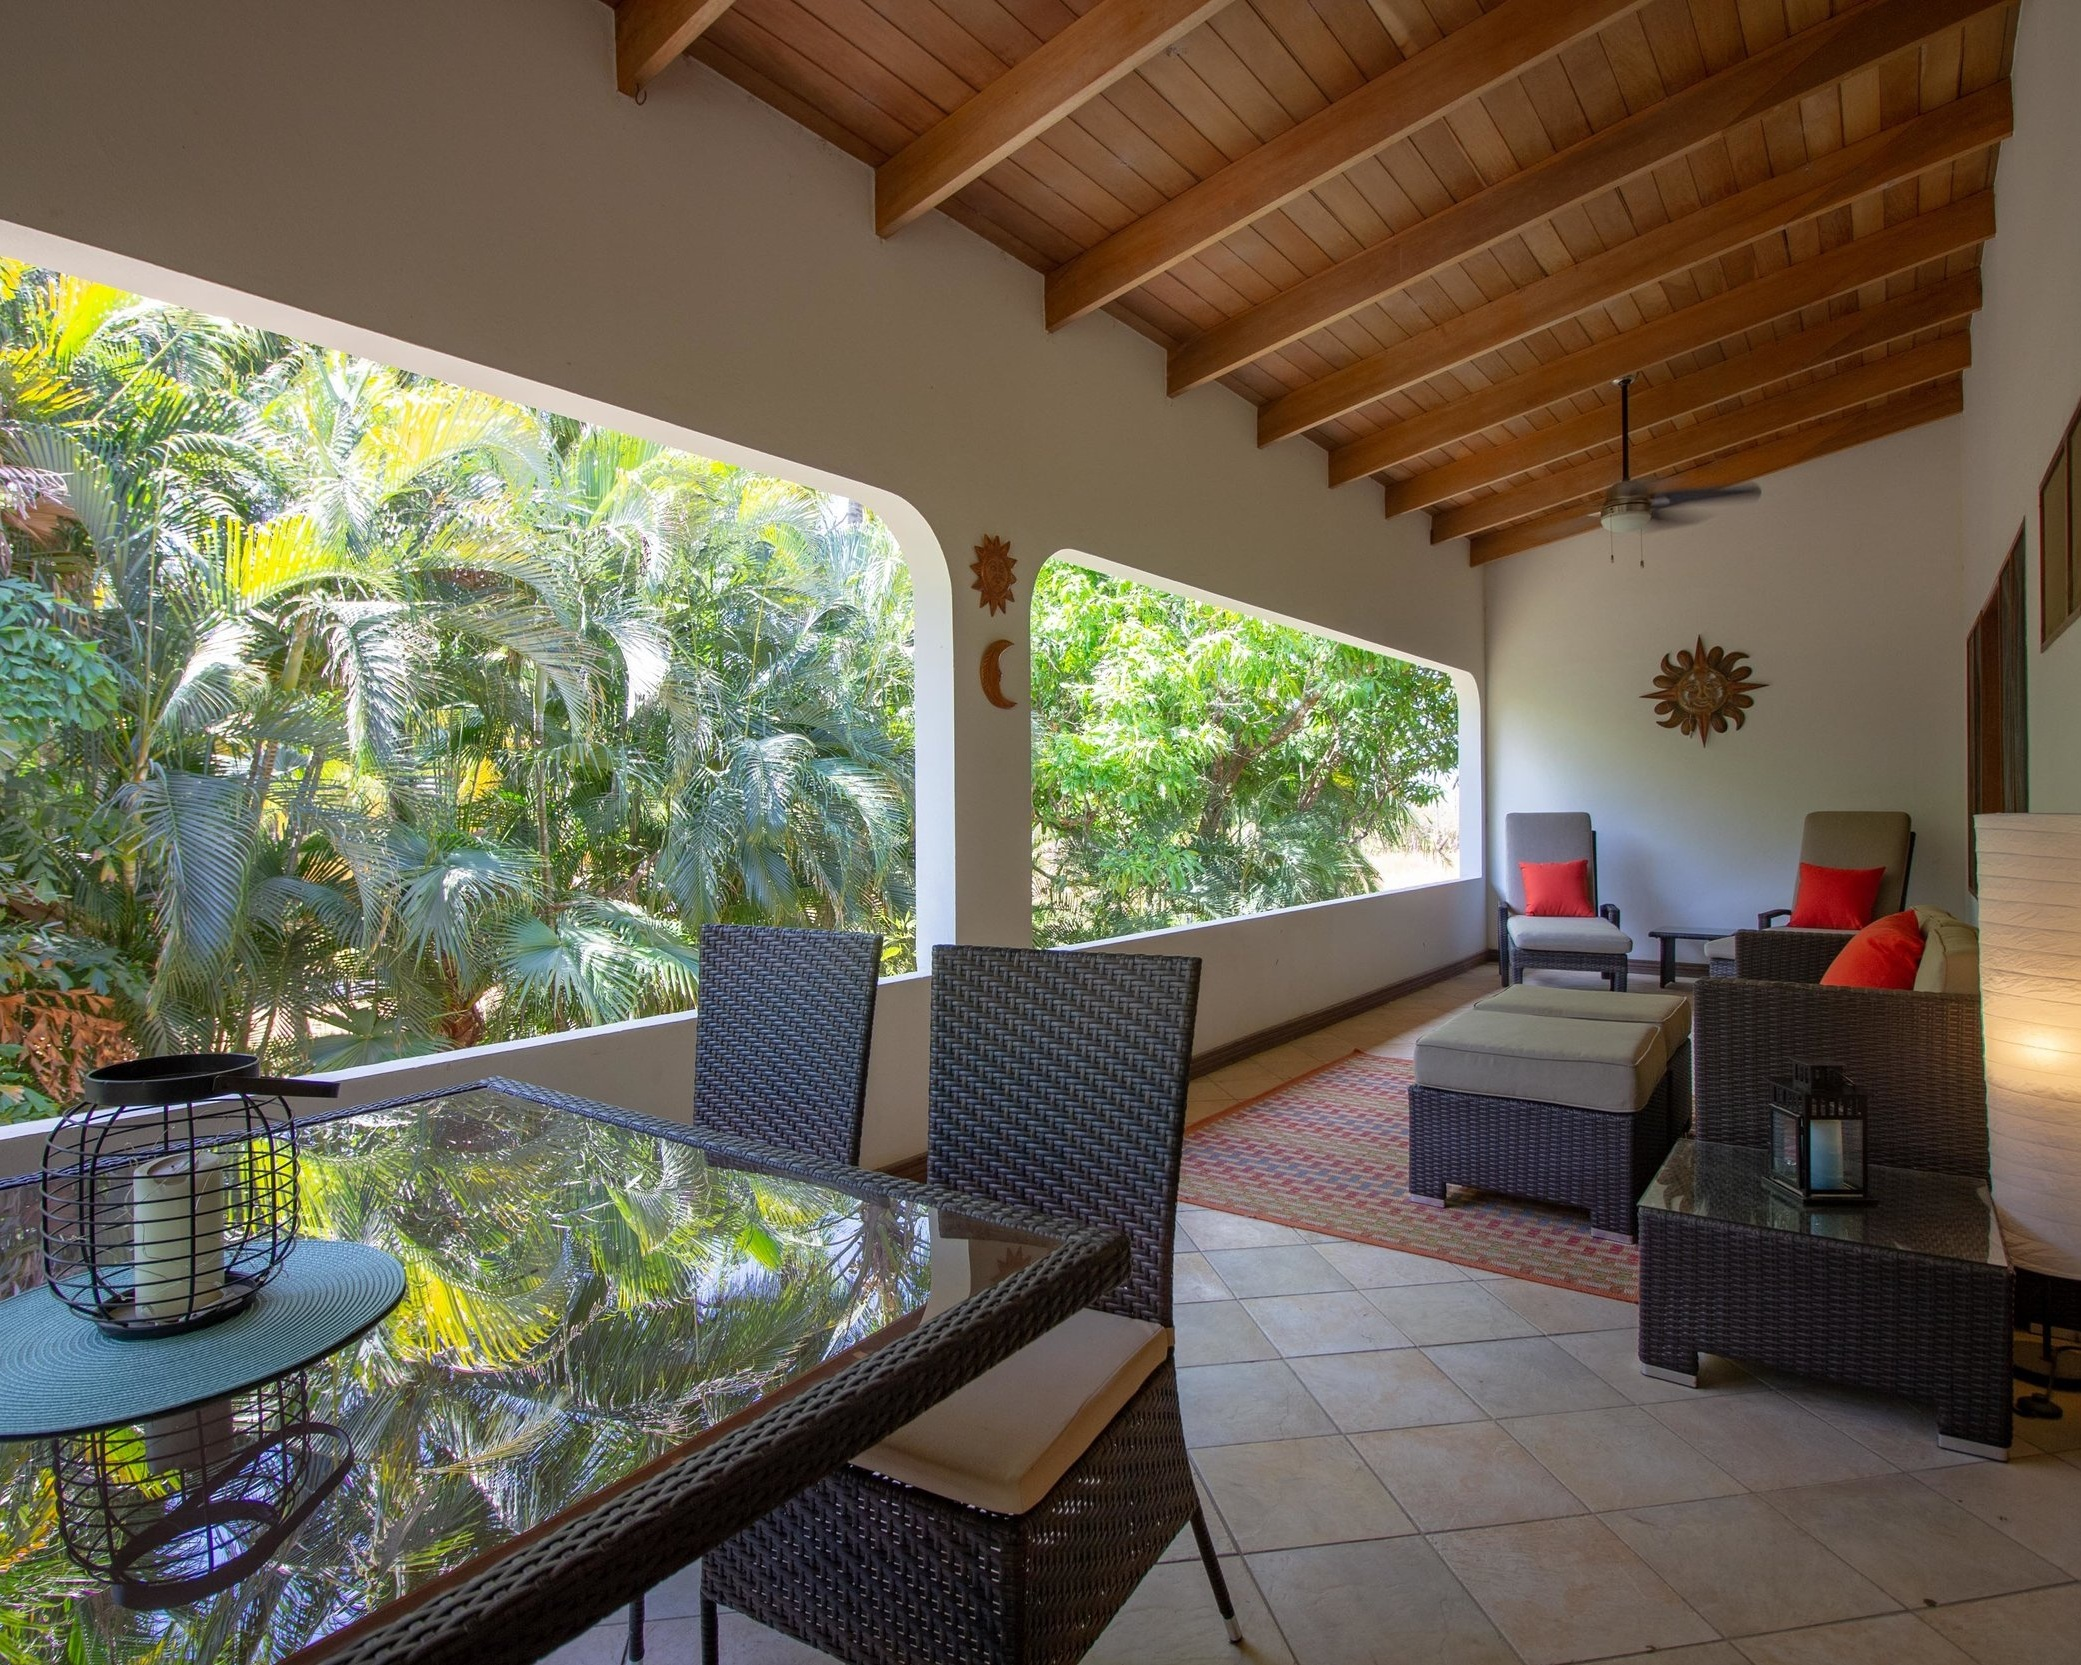 Ocean Views Private Location Shared Pool Fully Equipped Kitchen Sleeps 4 WIFI Television  CLICK FOR MORE DETAILS